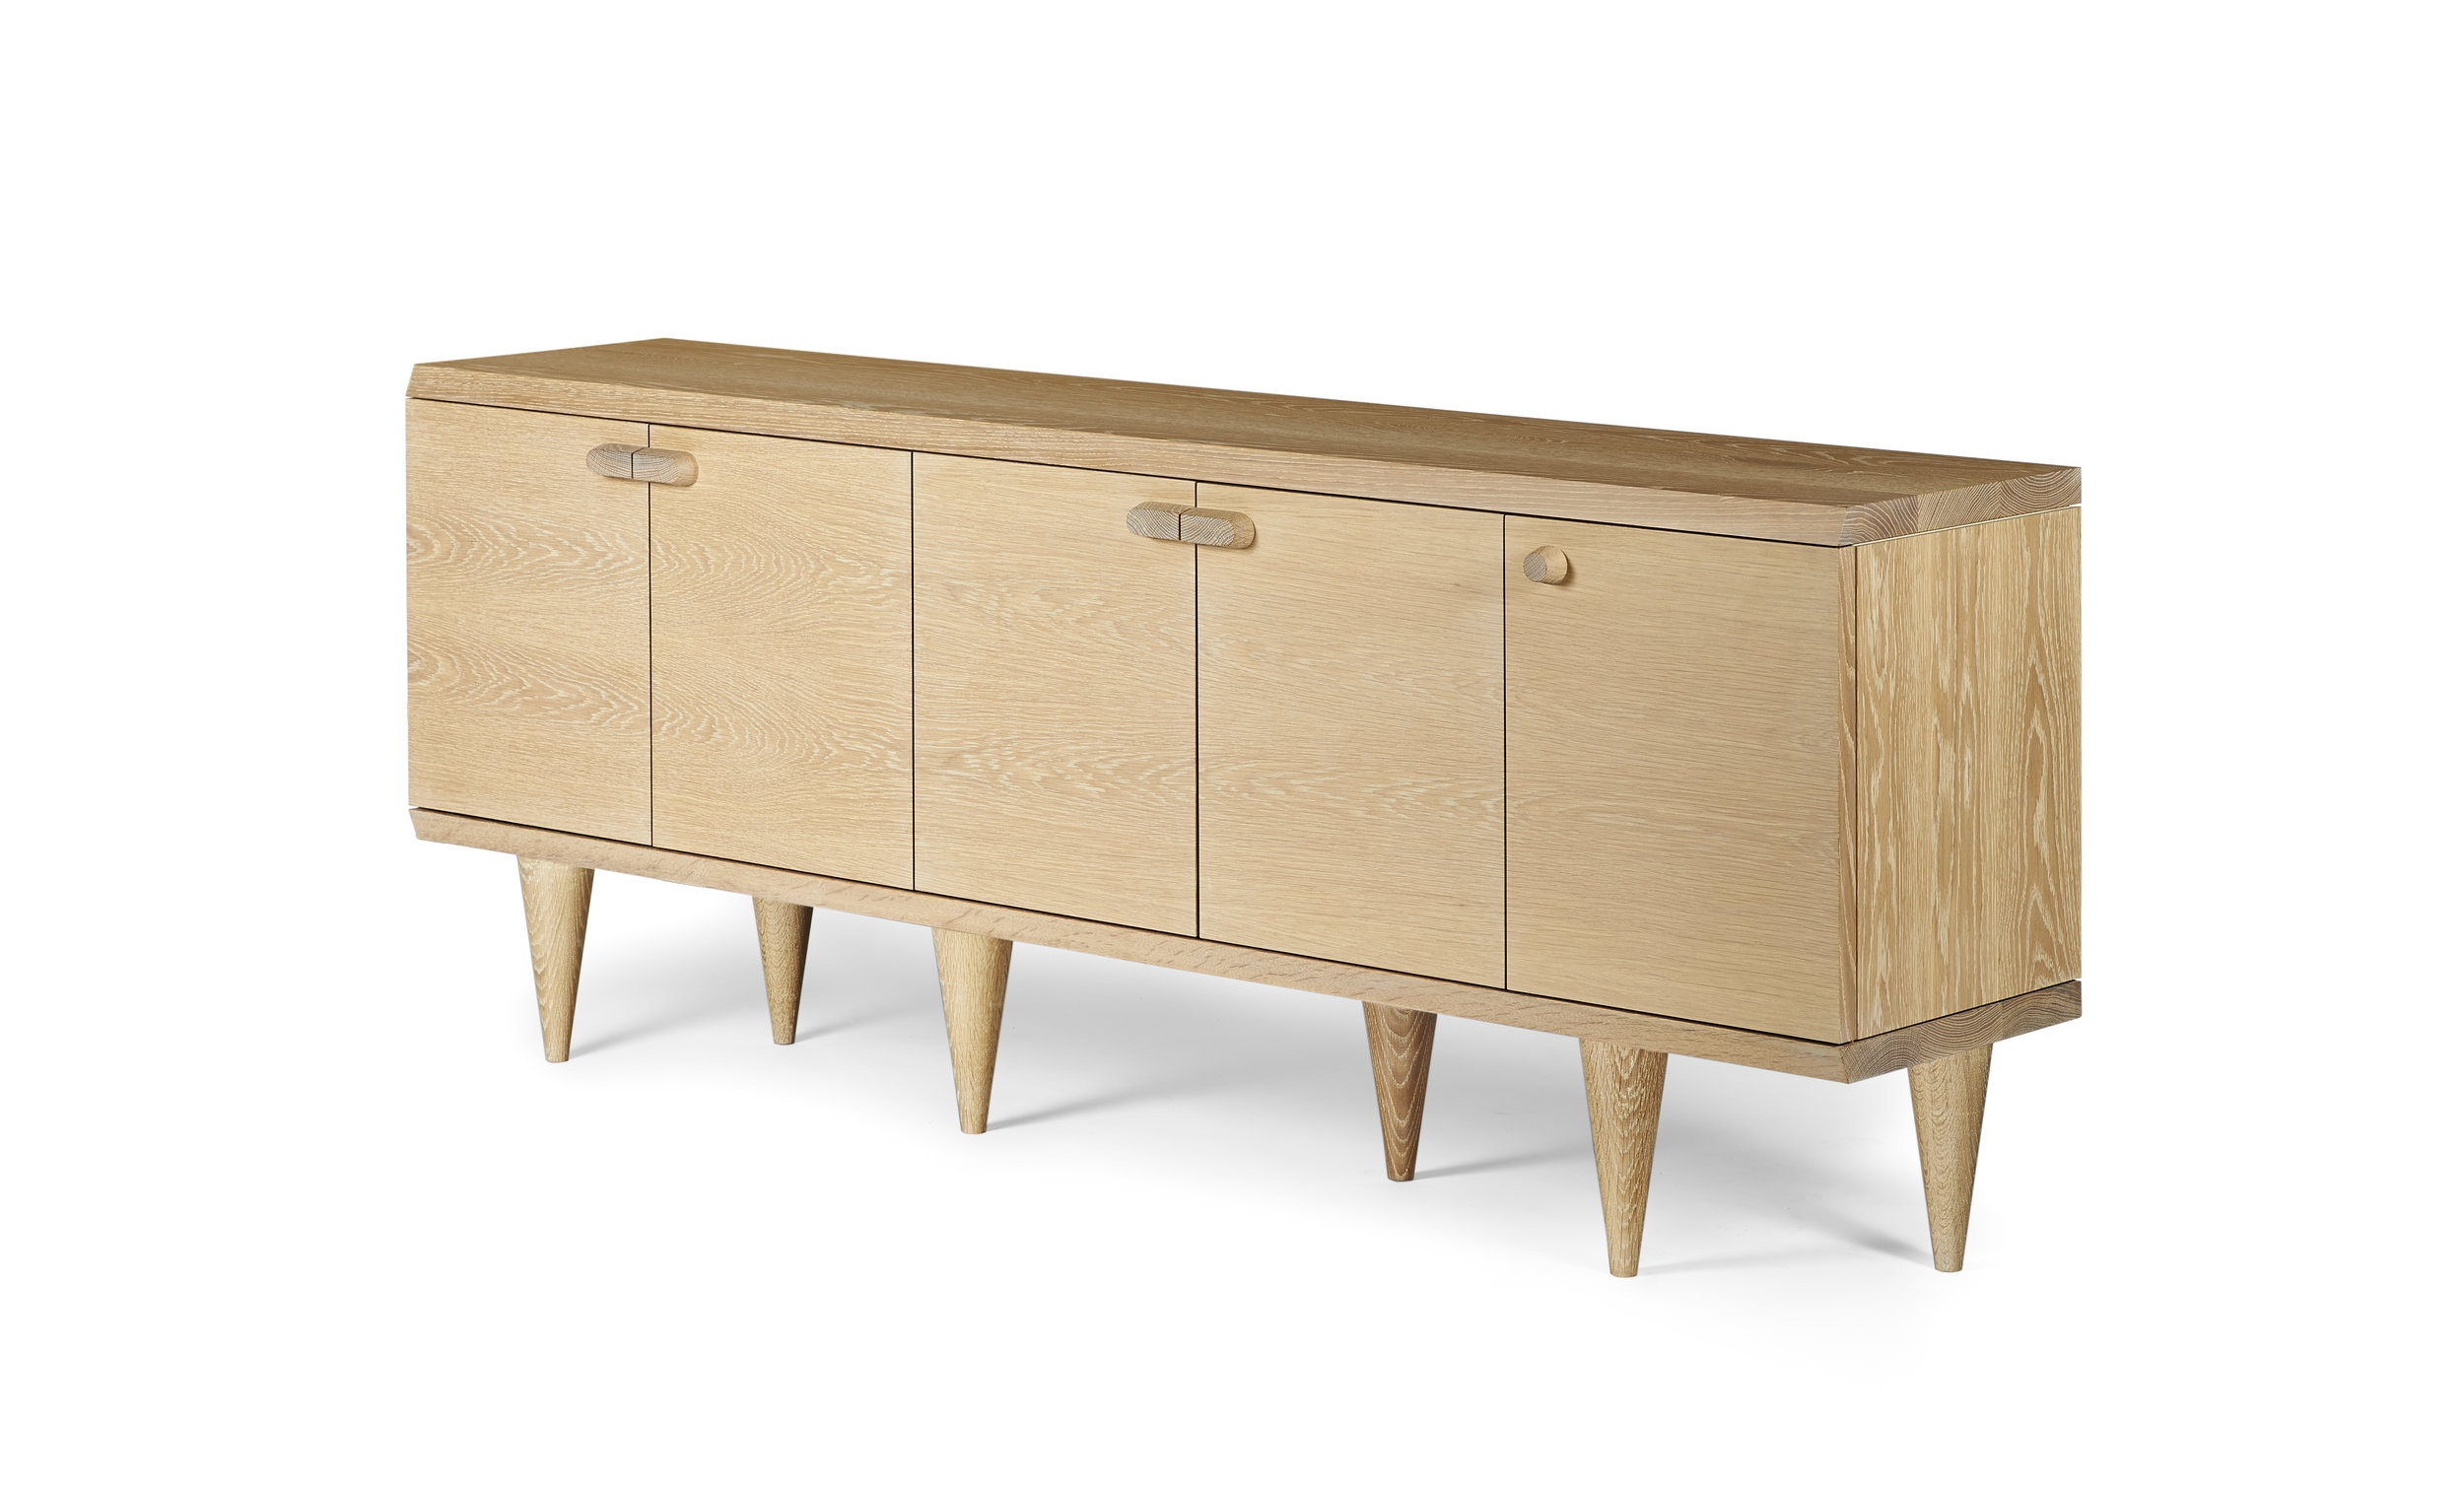 Djuna-Desk and Credenza4690.jpg